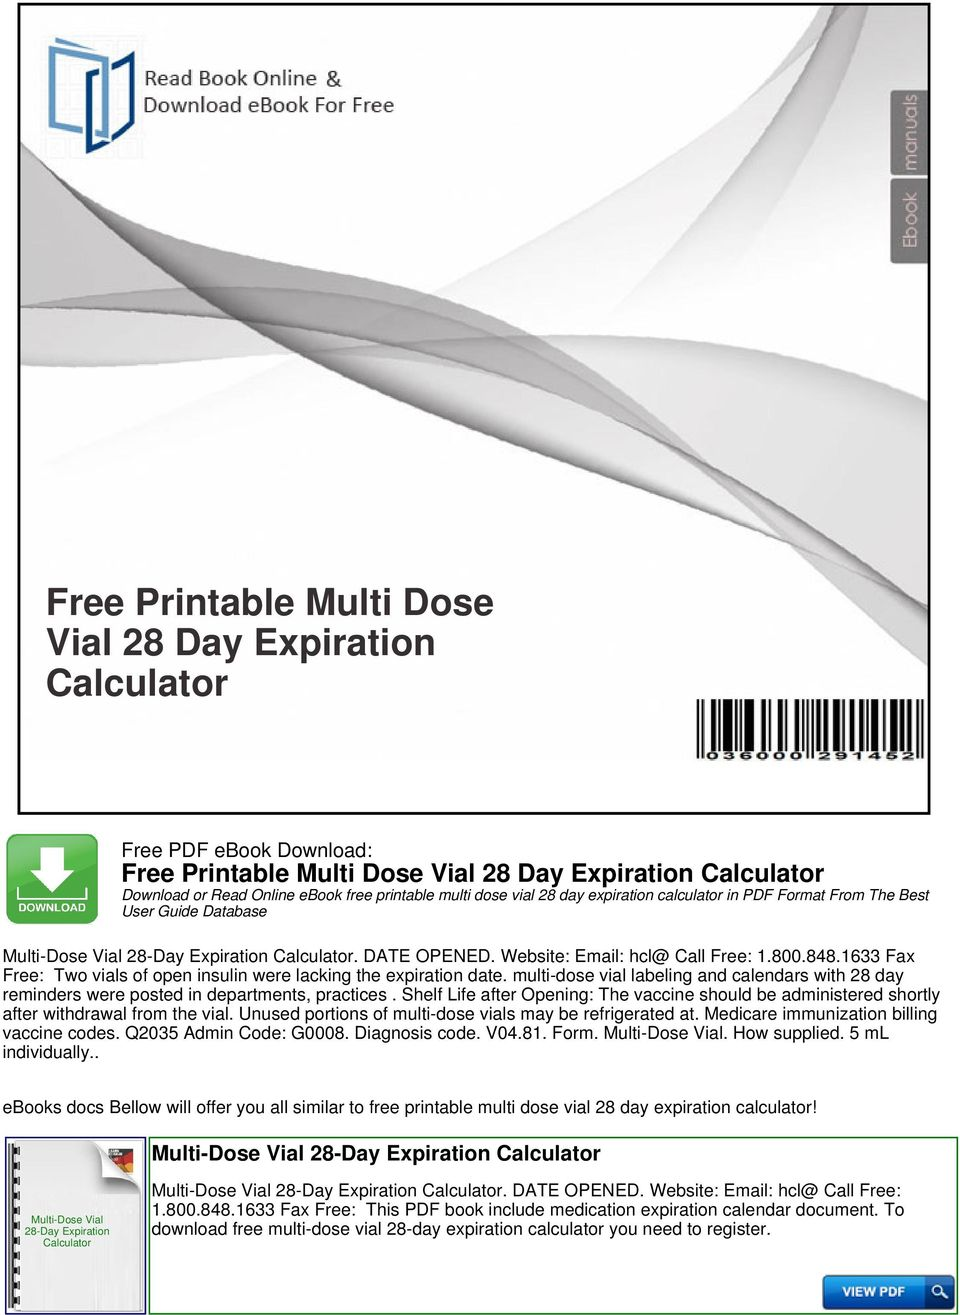 Free printable multi dose vial 28 day expiration calculator pdf 1633 fax free two vials of open insulin were lacking the expiration date multi fandeluxe Image collections